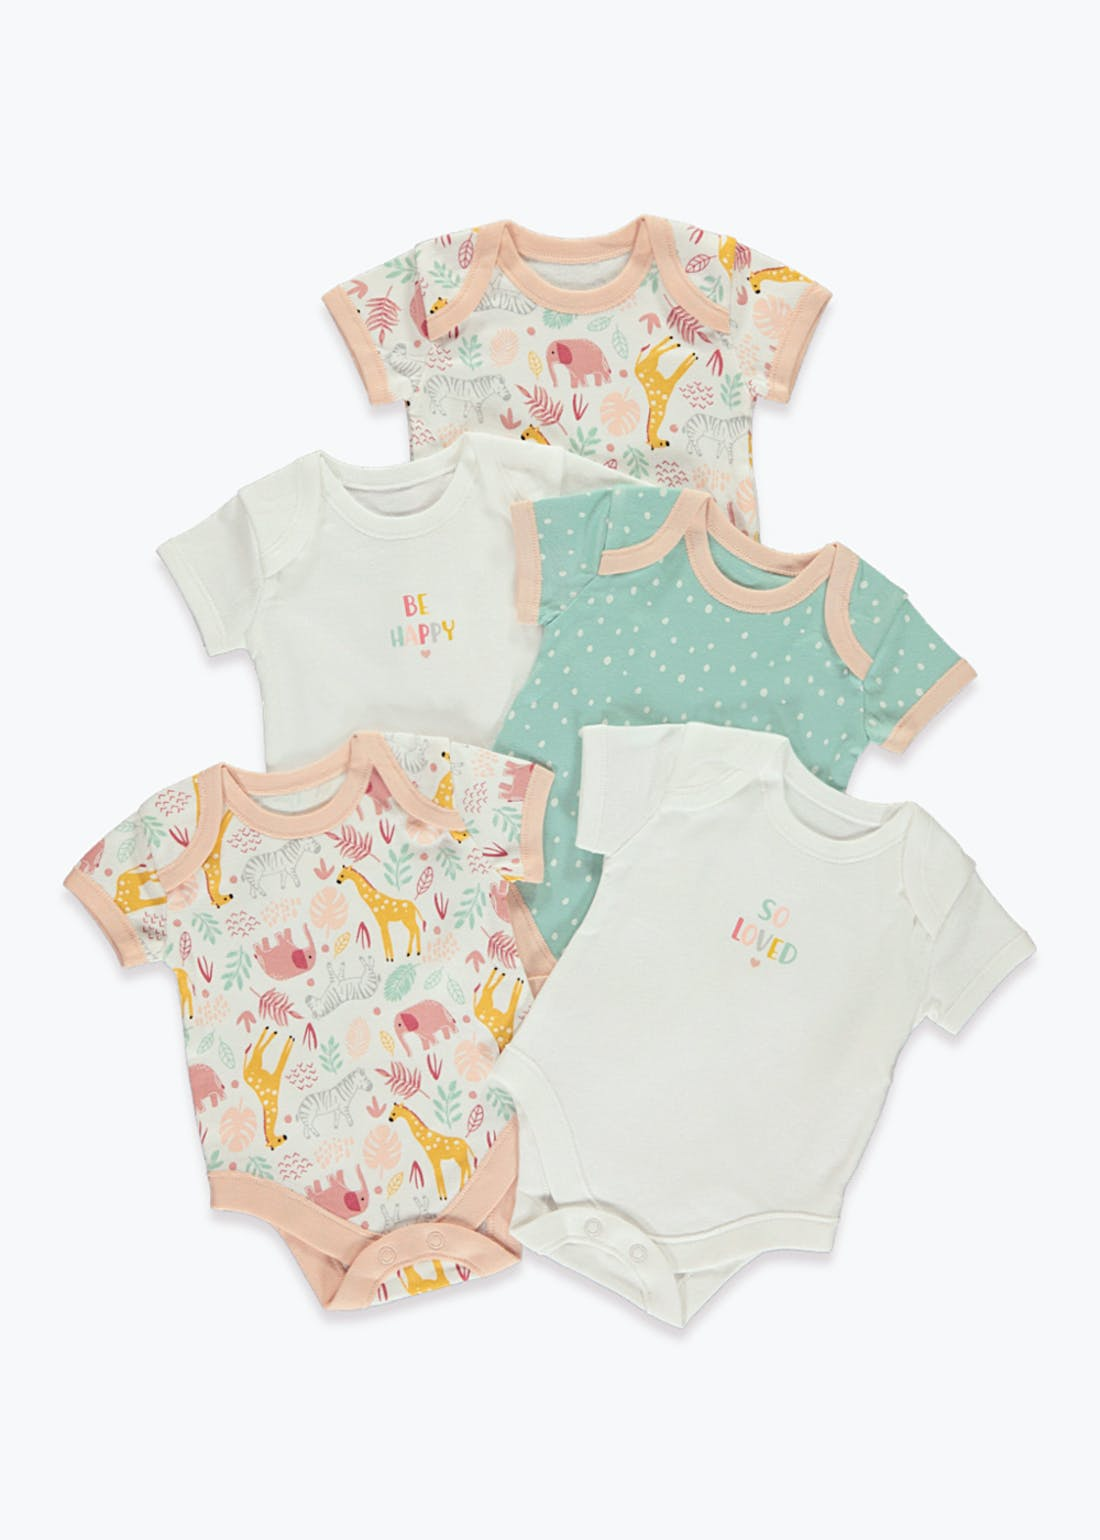 Girls 5 Pack Safari Print Bodysuits (Tiny Baby-23mths)